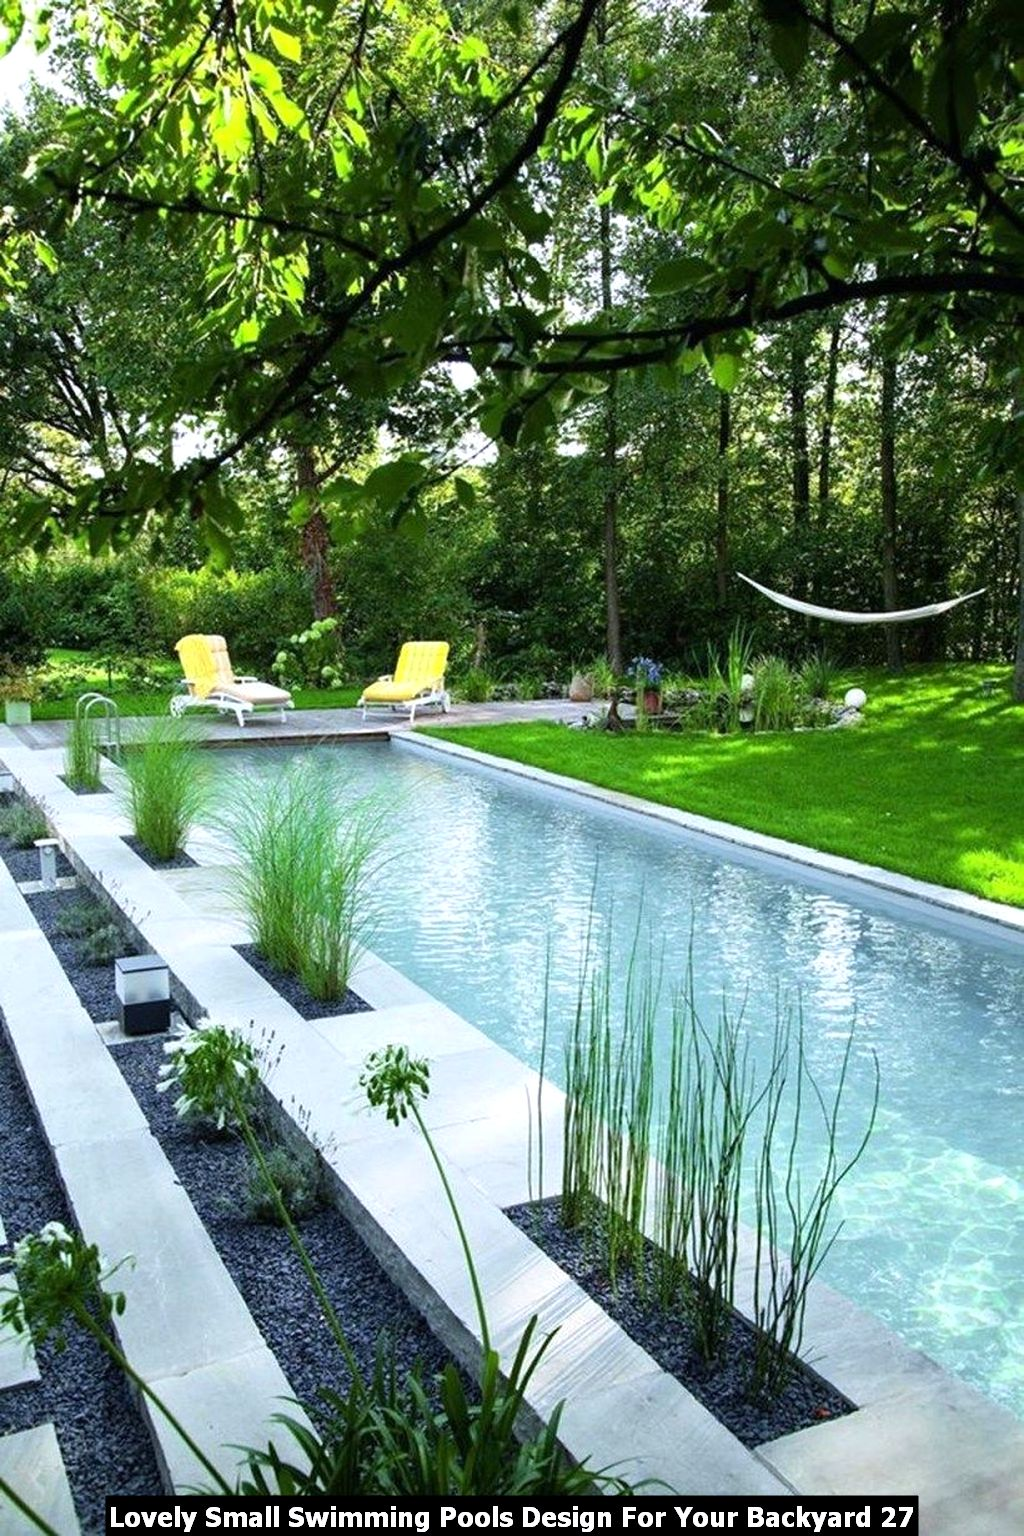 Lovely Small Swimming Pools Design For Your Backyard 27